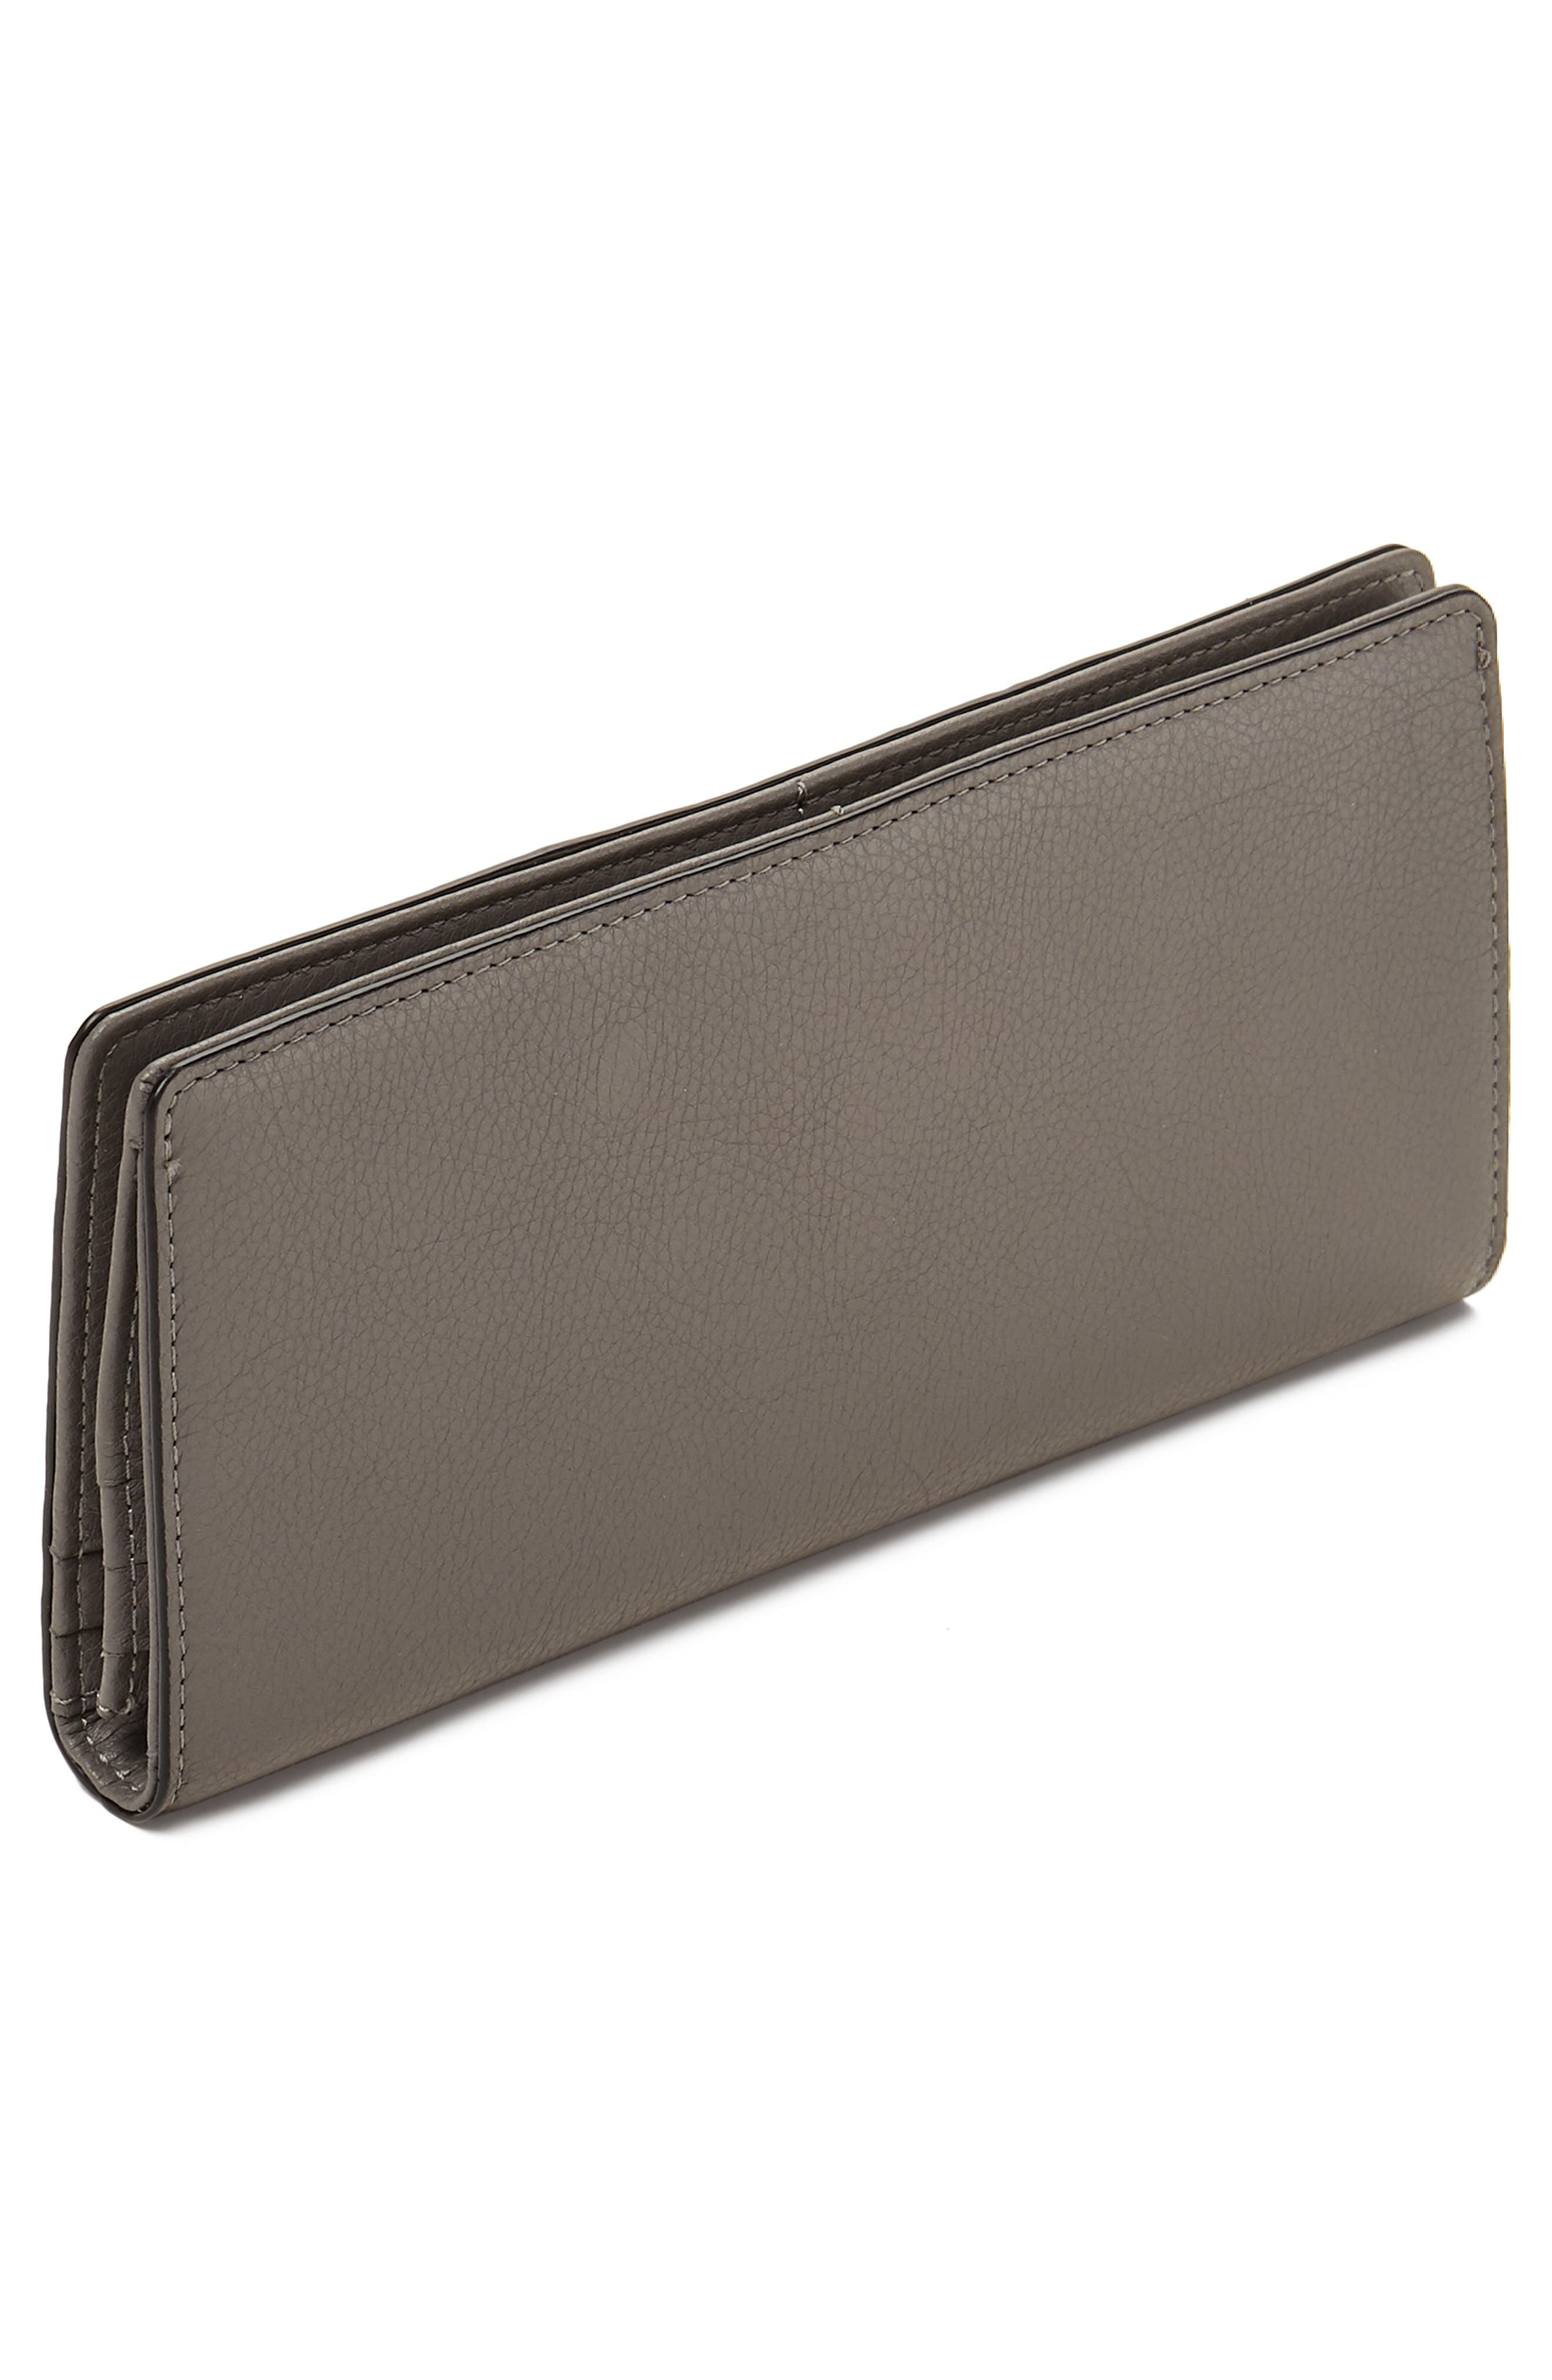 Moto Leather Continental Wallet,                             Alternate thumbnail 2, color,                             WINTER GREY